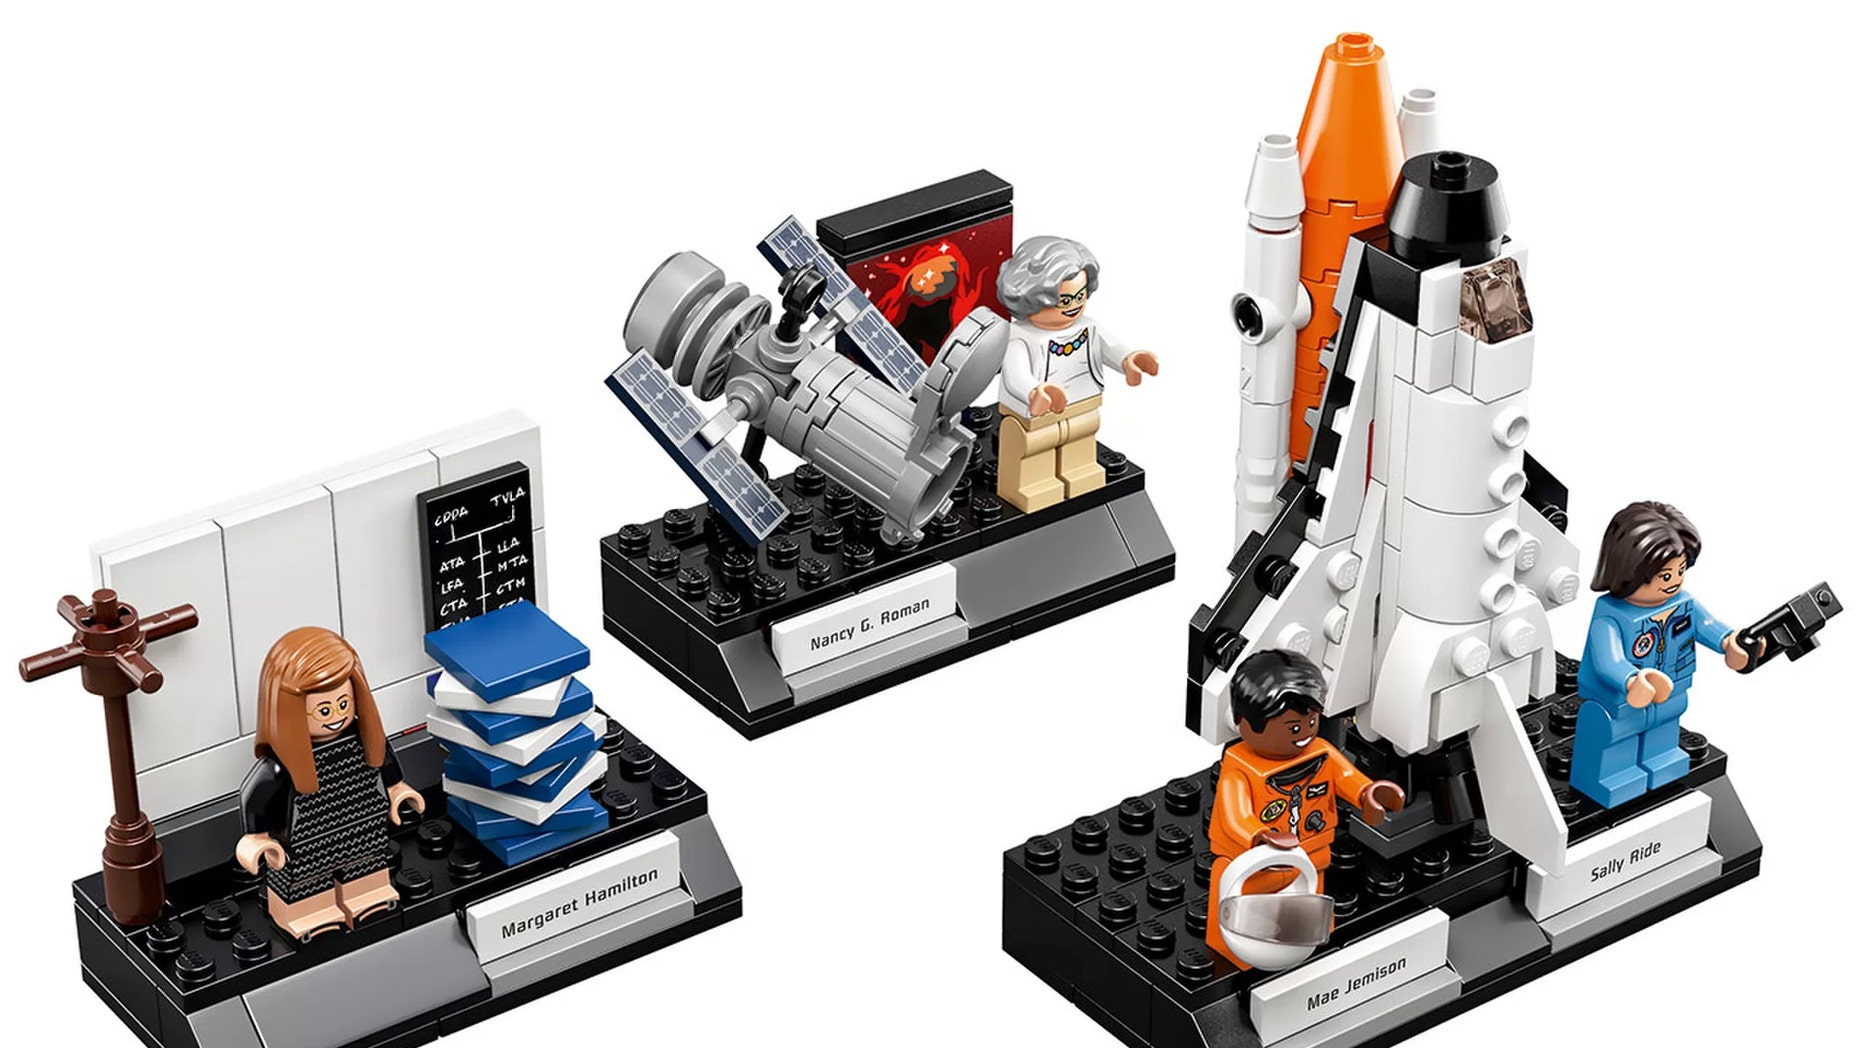 "The Lego Ideas ""Women of NASA"" set includes minifigures modeled after astronomer Nancy Grace Roman, computer scientist Margaret Hamilton and astronauts Sally Ride and Mae Jemison. Credit: Lego"